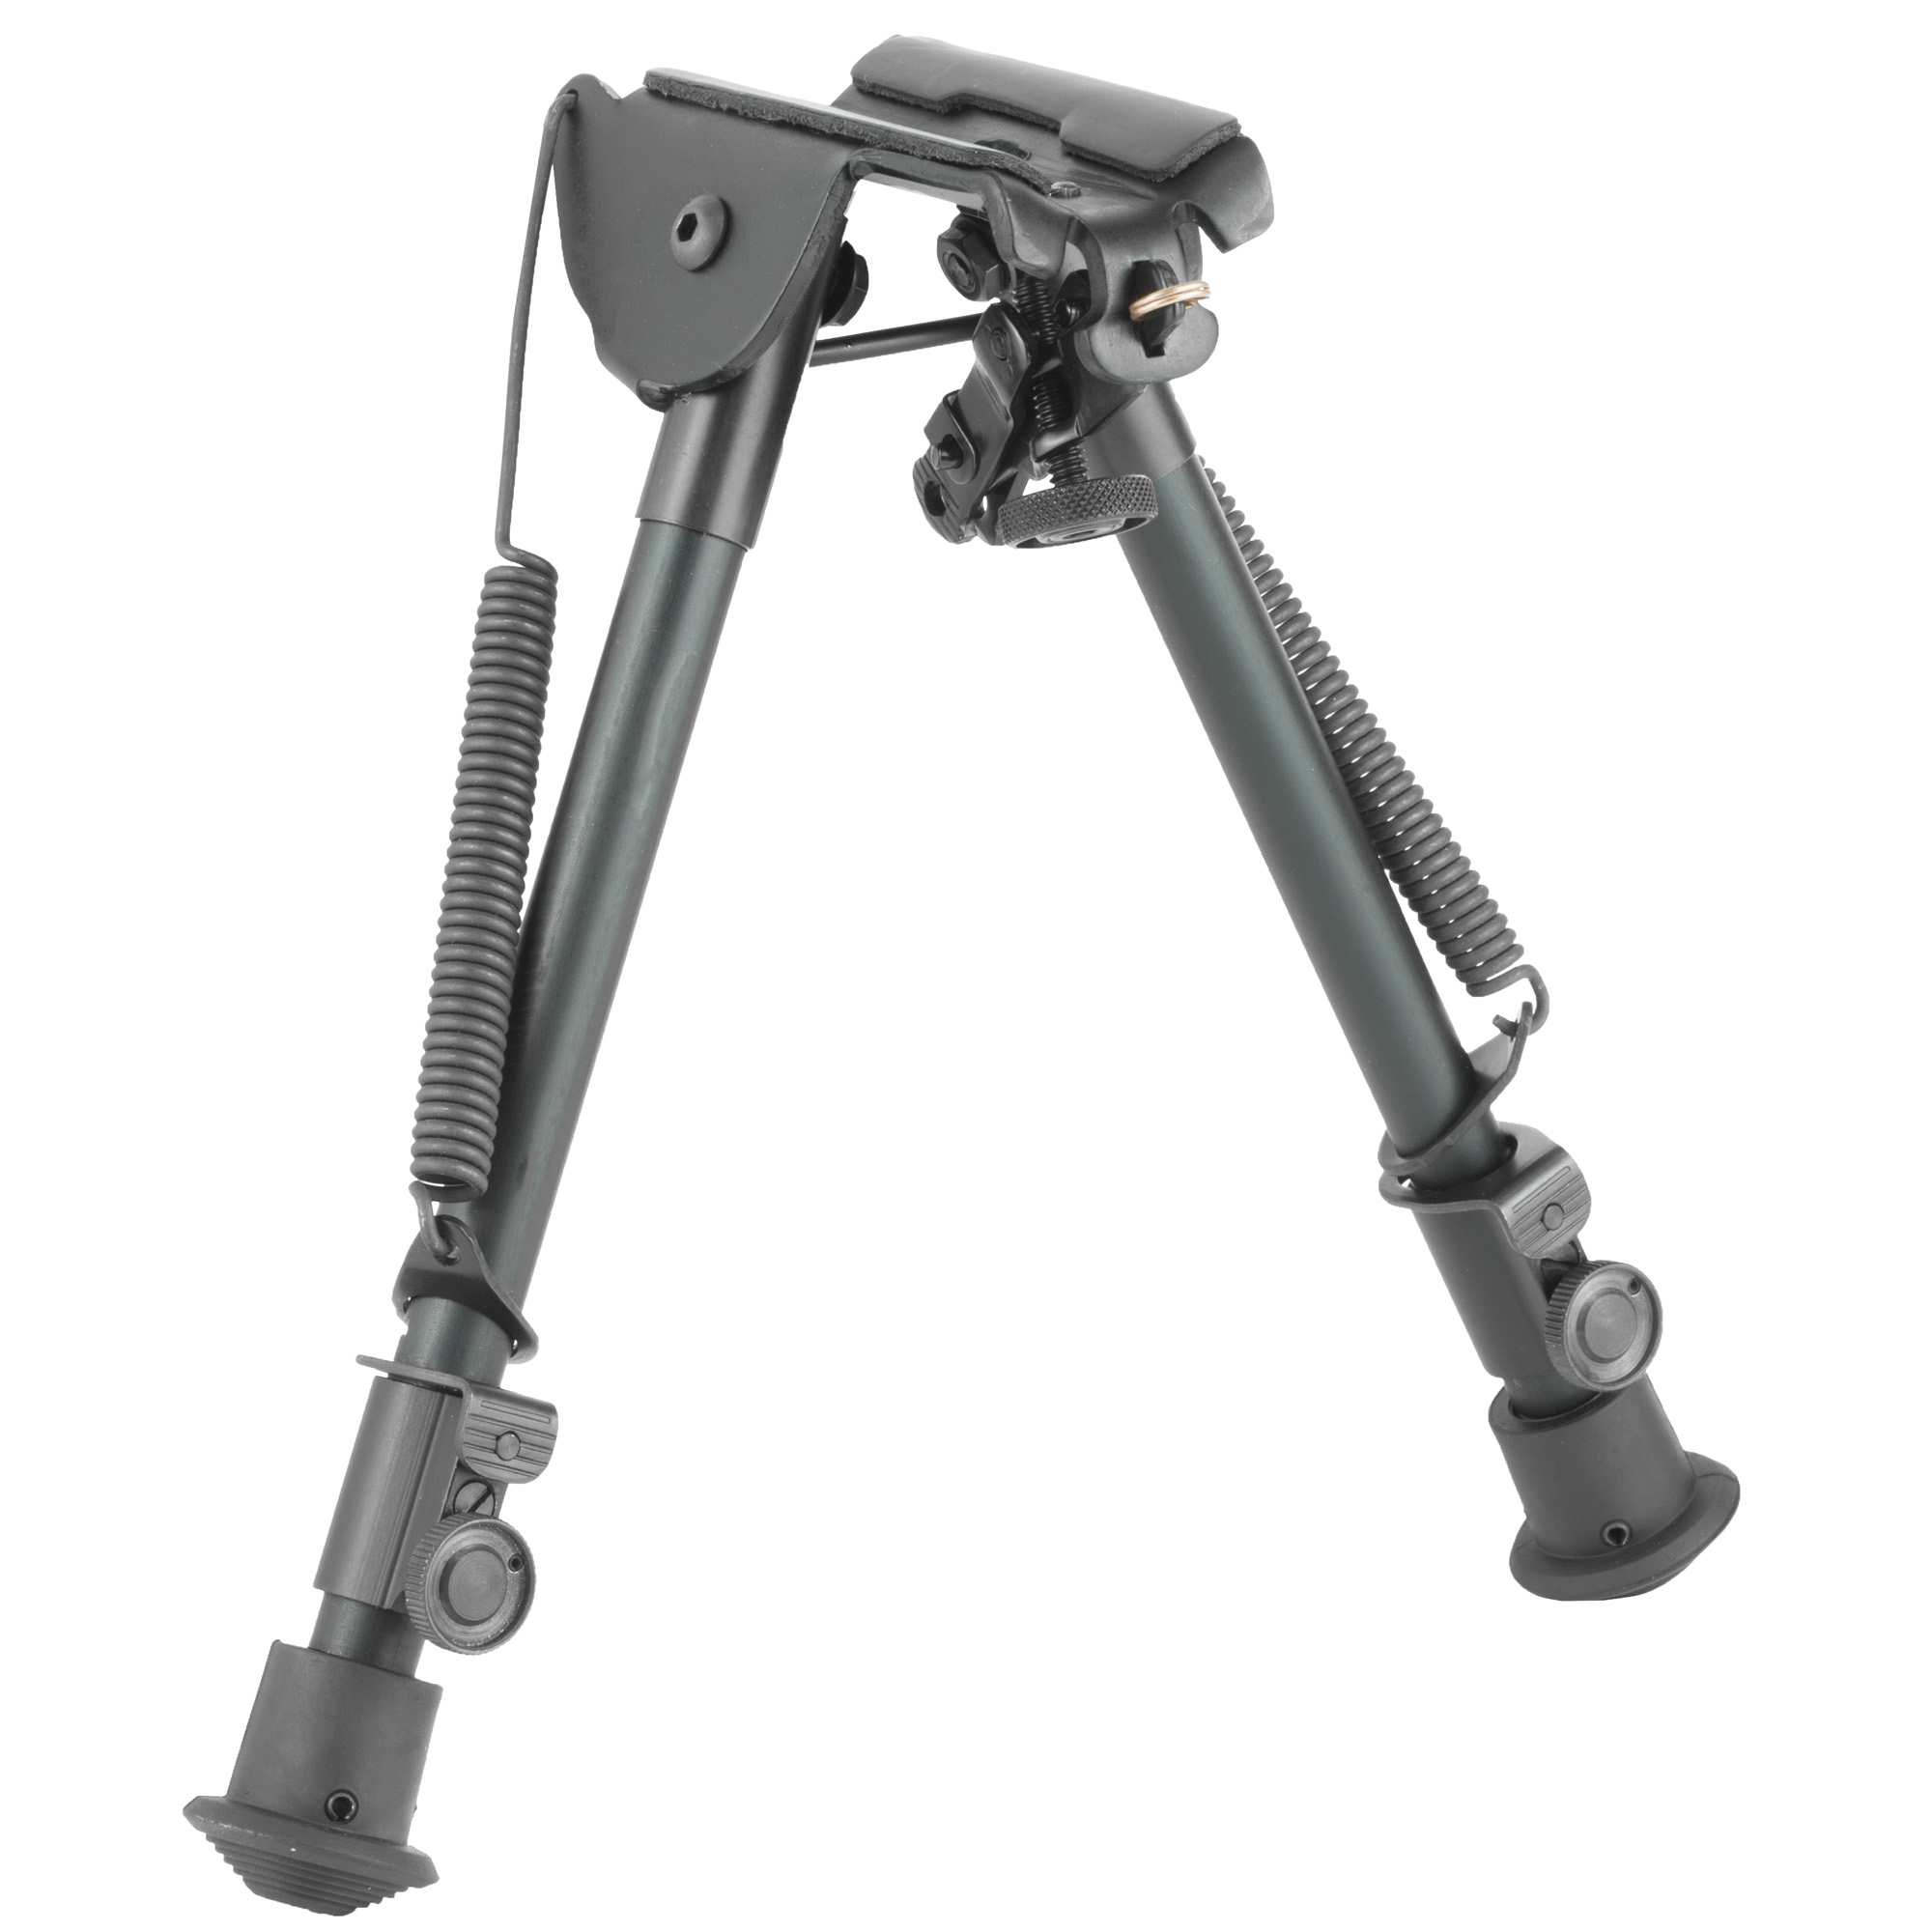 """Harris Engineering's 9""""-13"""" High Ultra-Light Fixed Bipod is manufactured using high quality parts to ensure excellent function and sustainable use. It attaches to a Sling Swivel Stud. The bipod features an anodized matte black finish."""